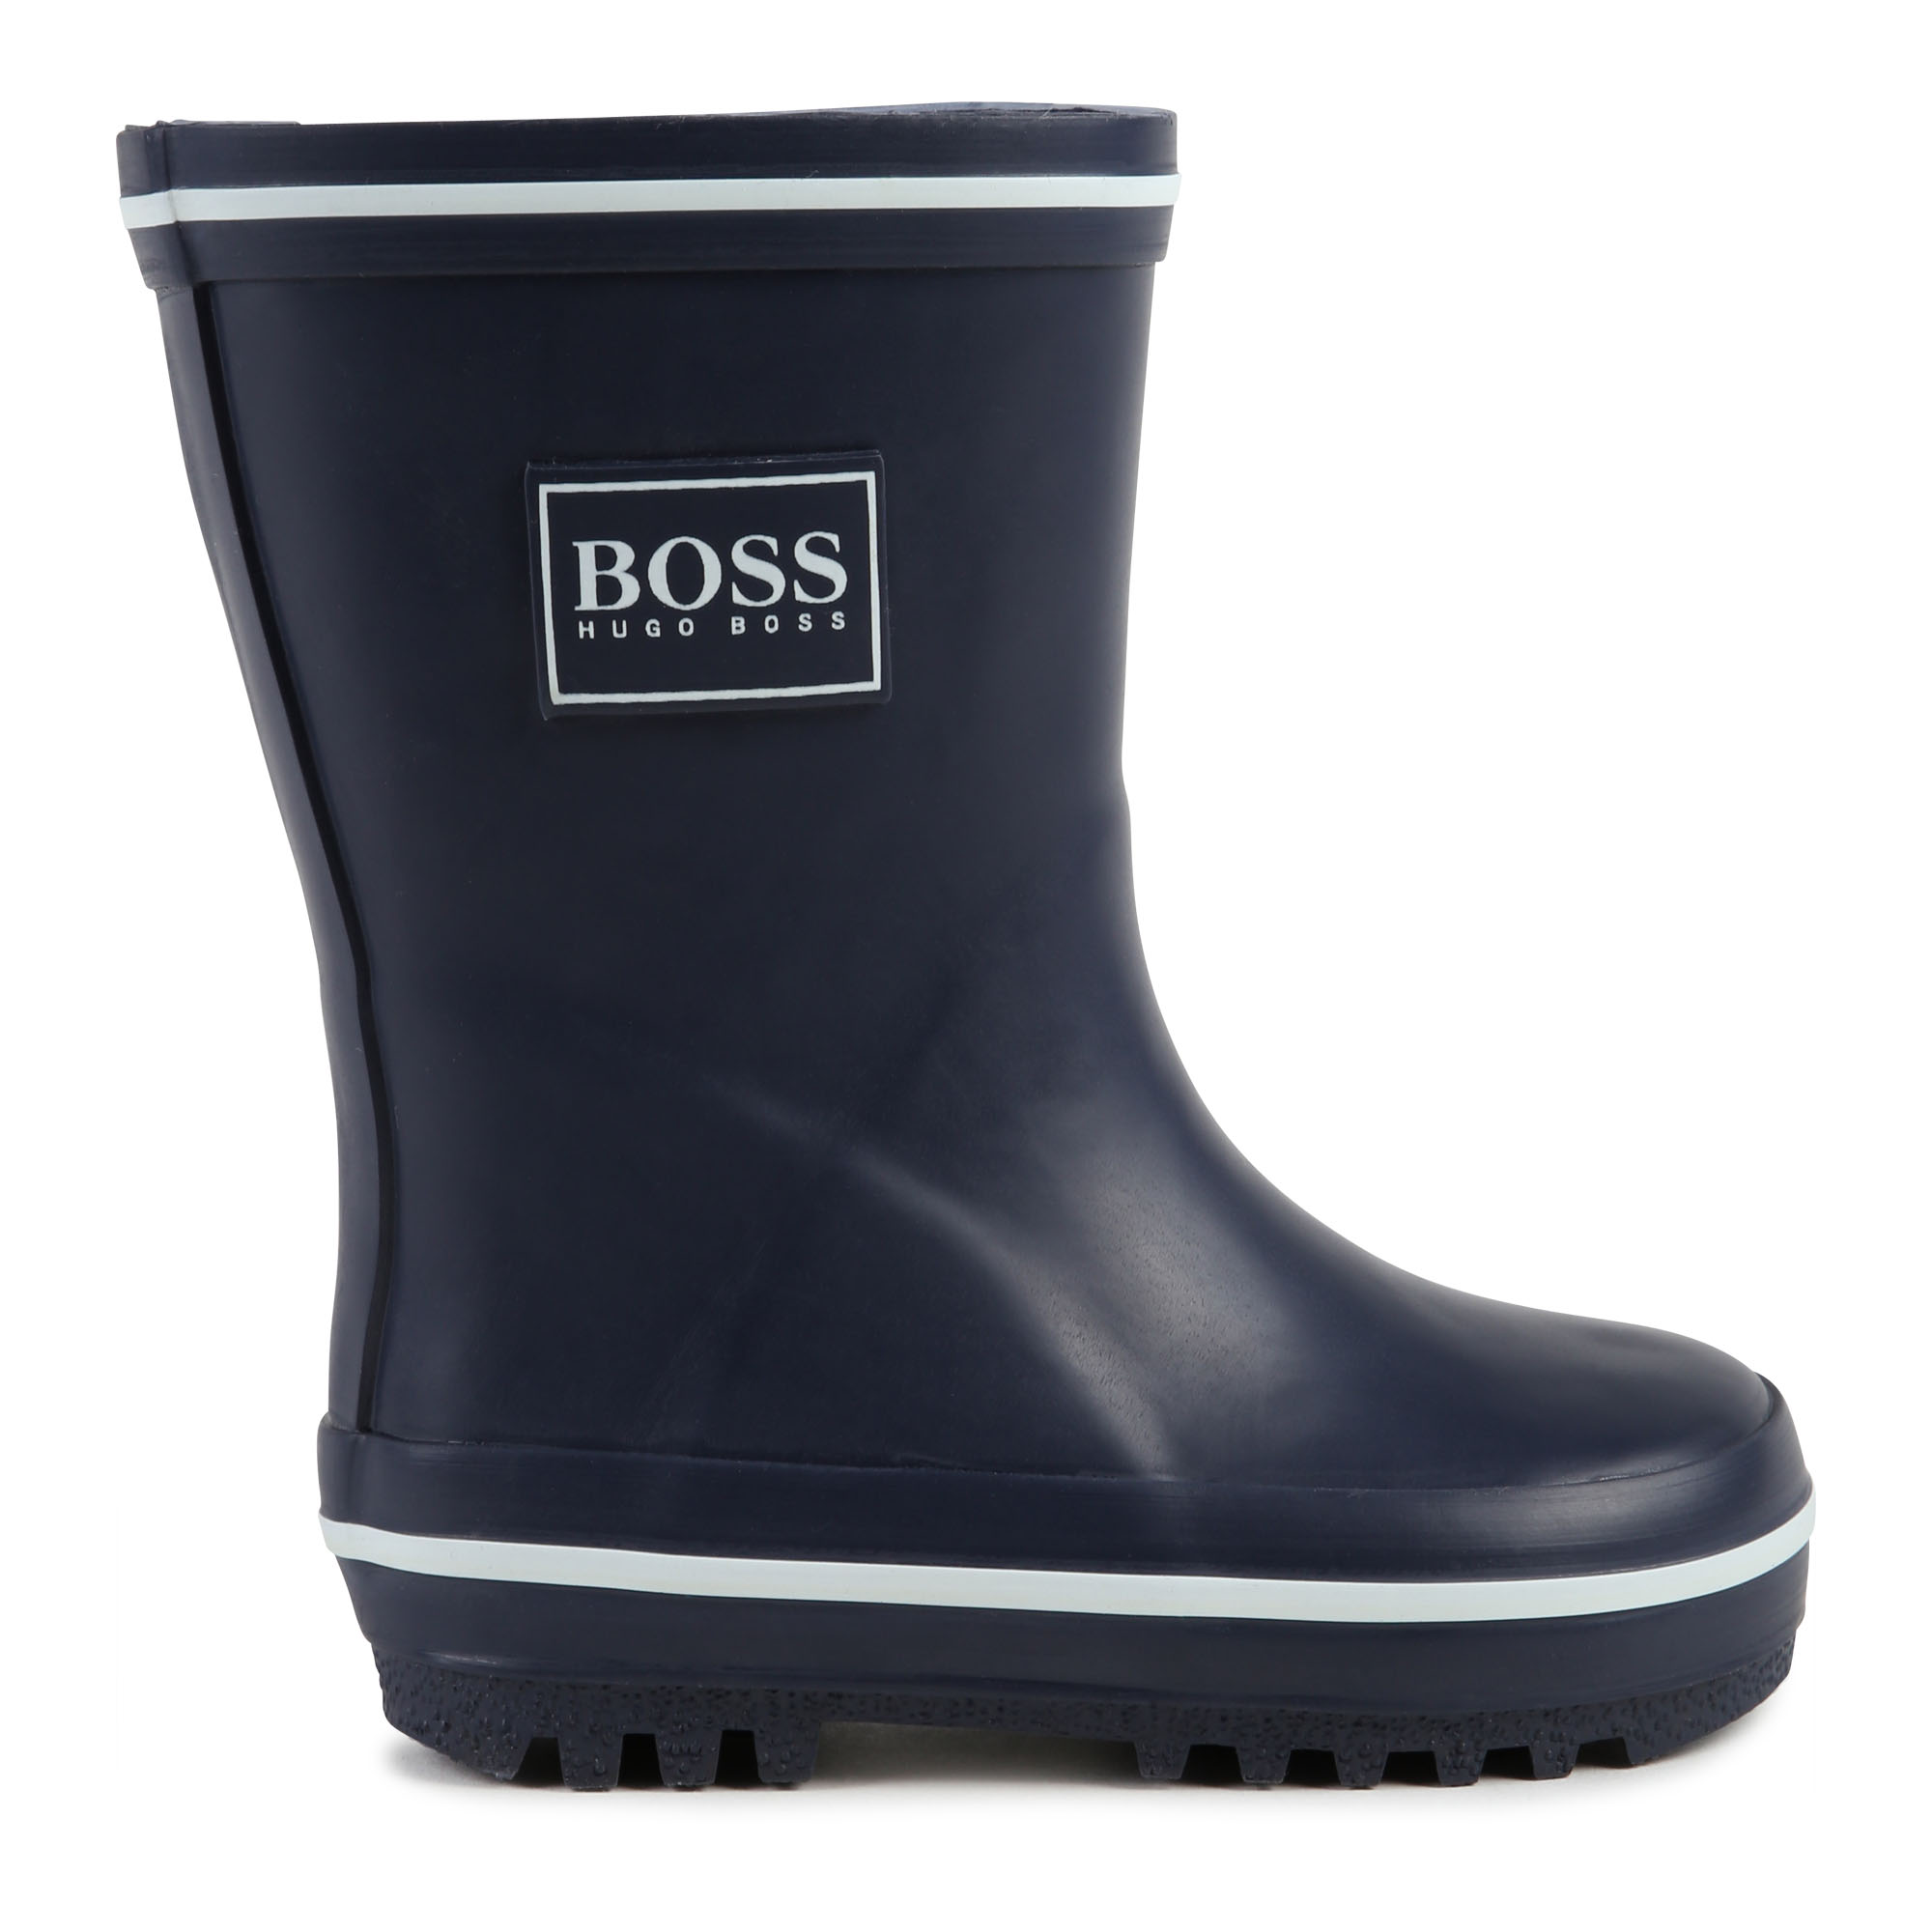 Waterproof wellington boots BOSS for BOY